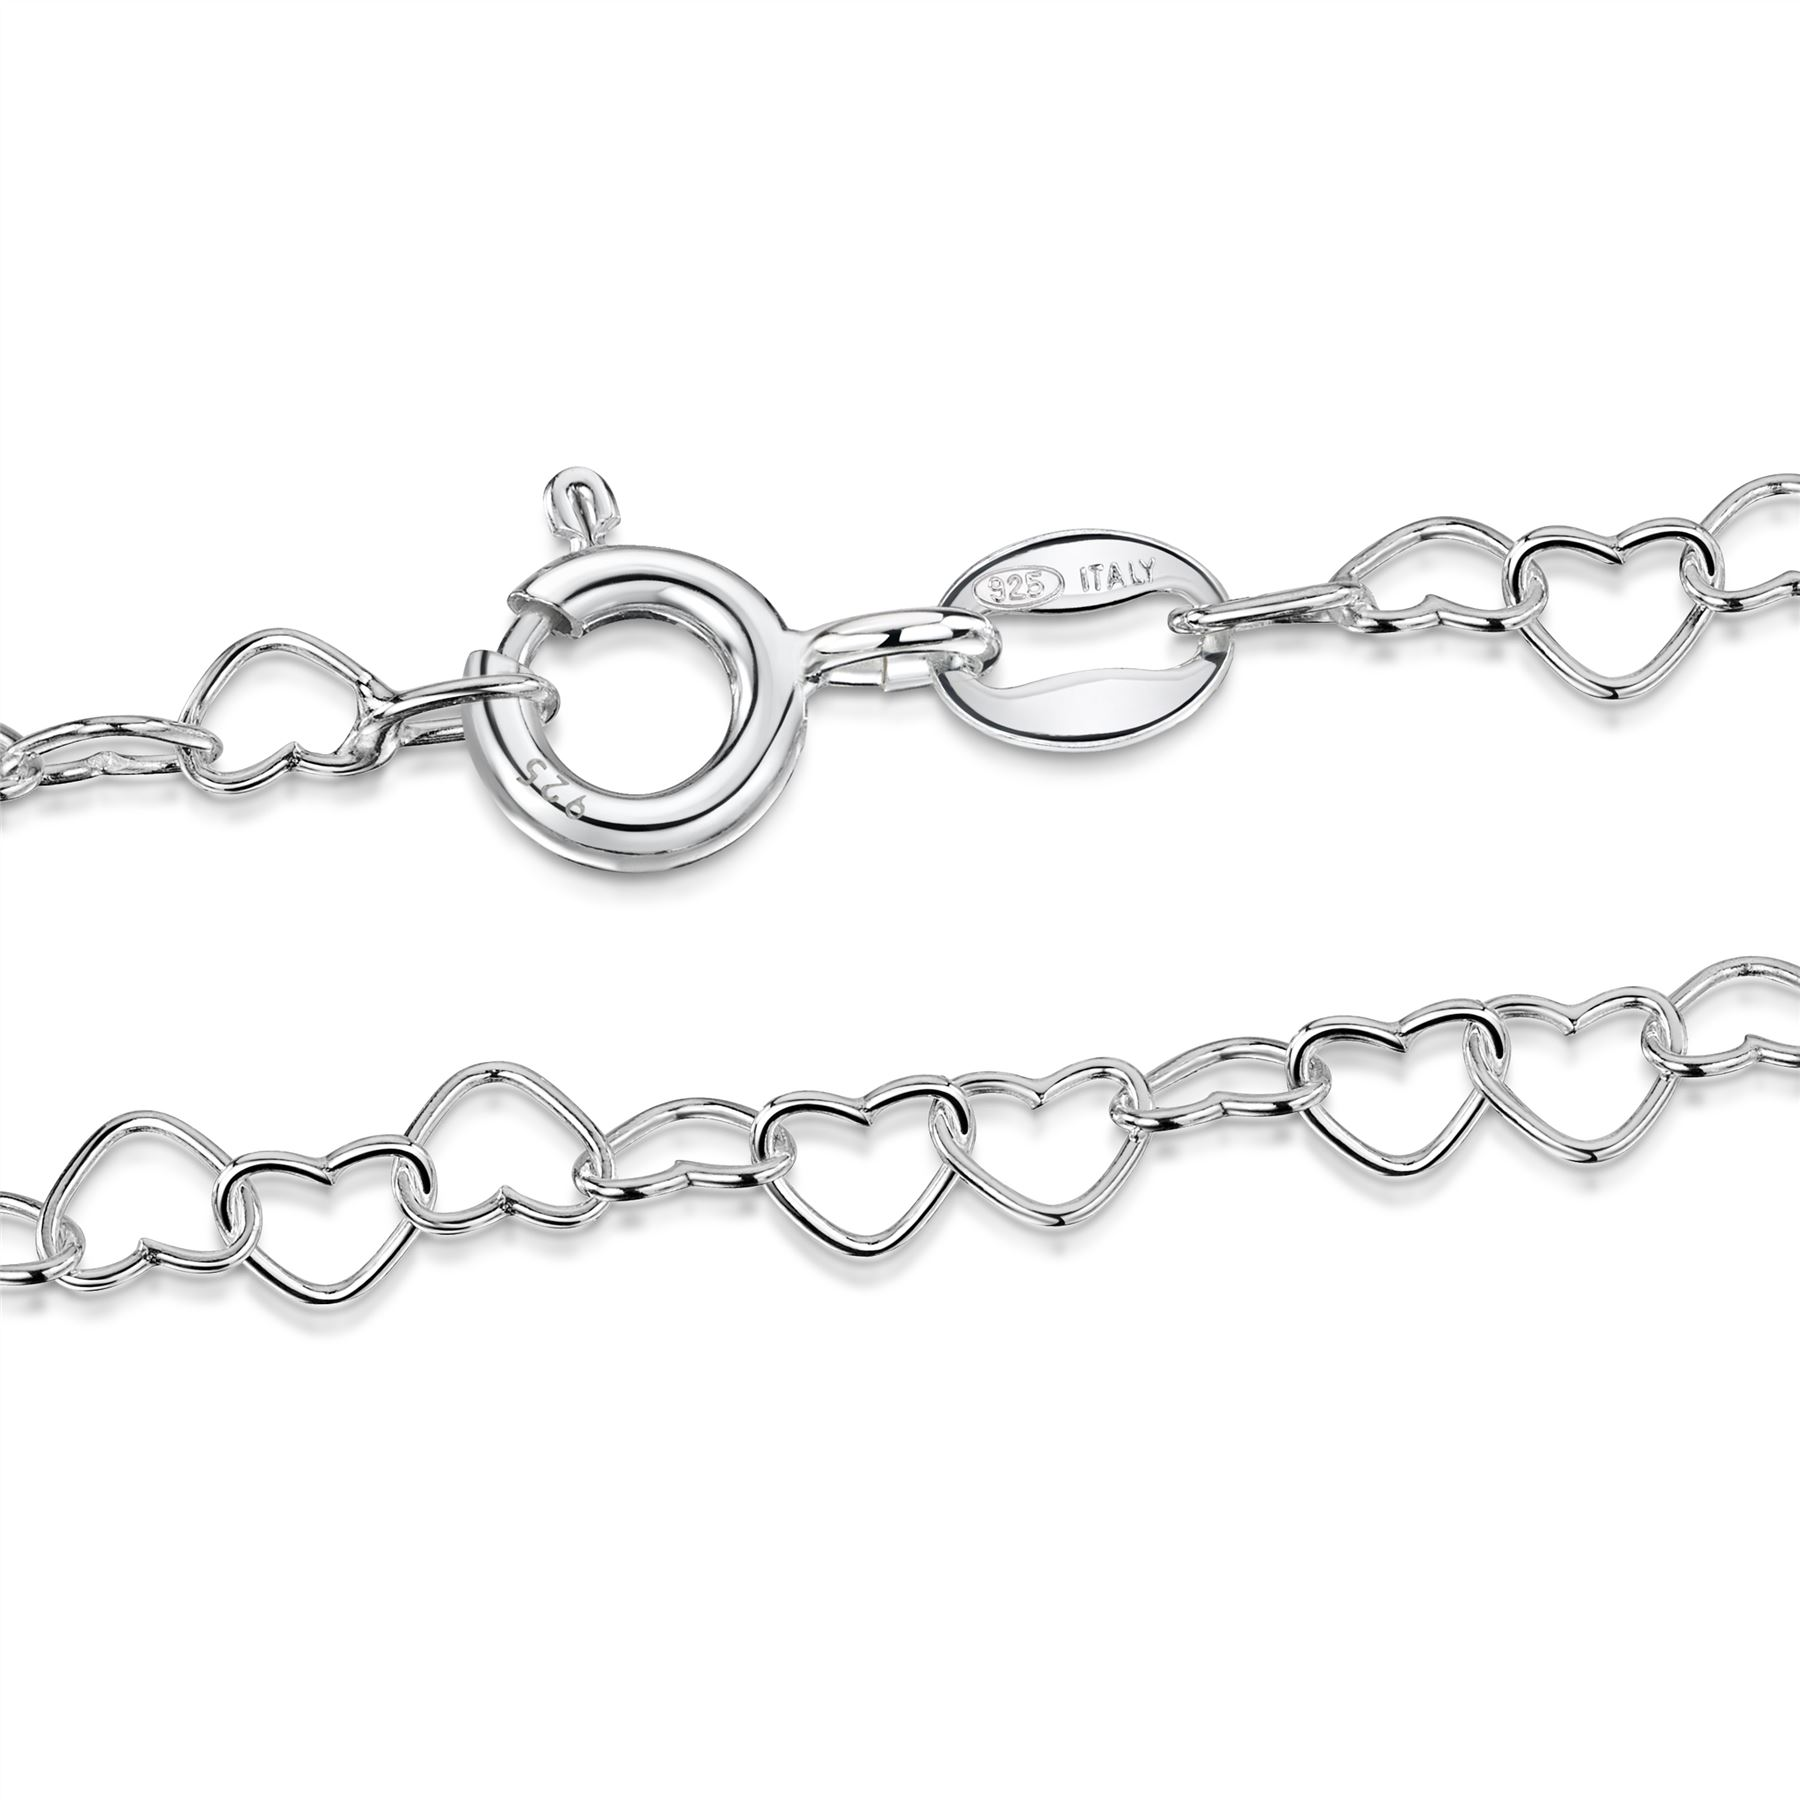 Amberta-Jewelry-Genuine-925-Sterling-Silver-Bracelet-Bangle-Chain-Made-in-Italy thumbnail 69